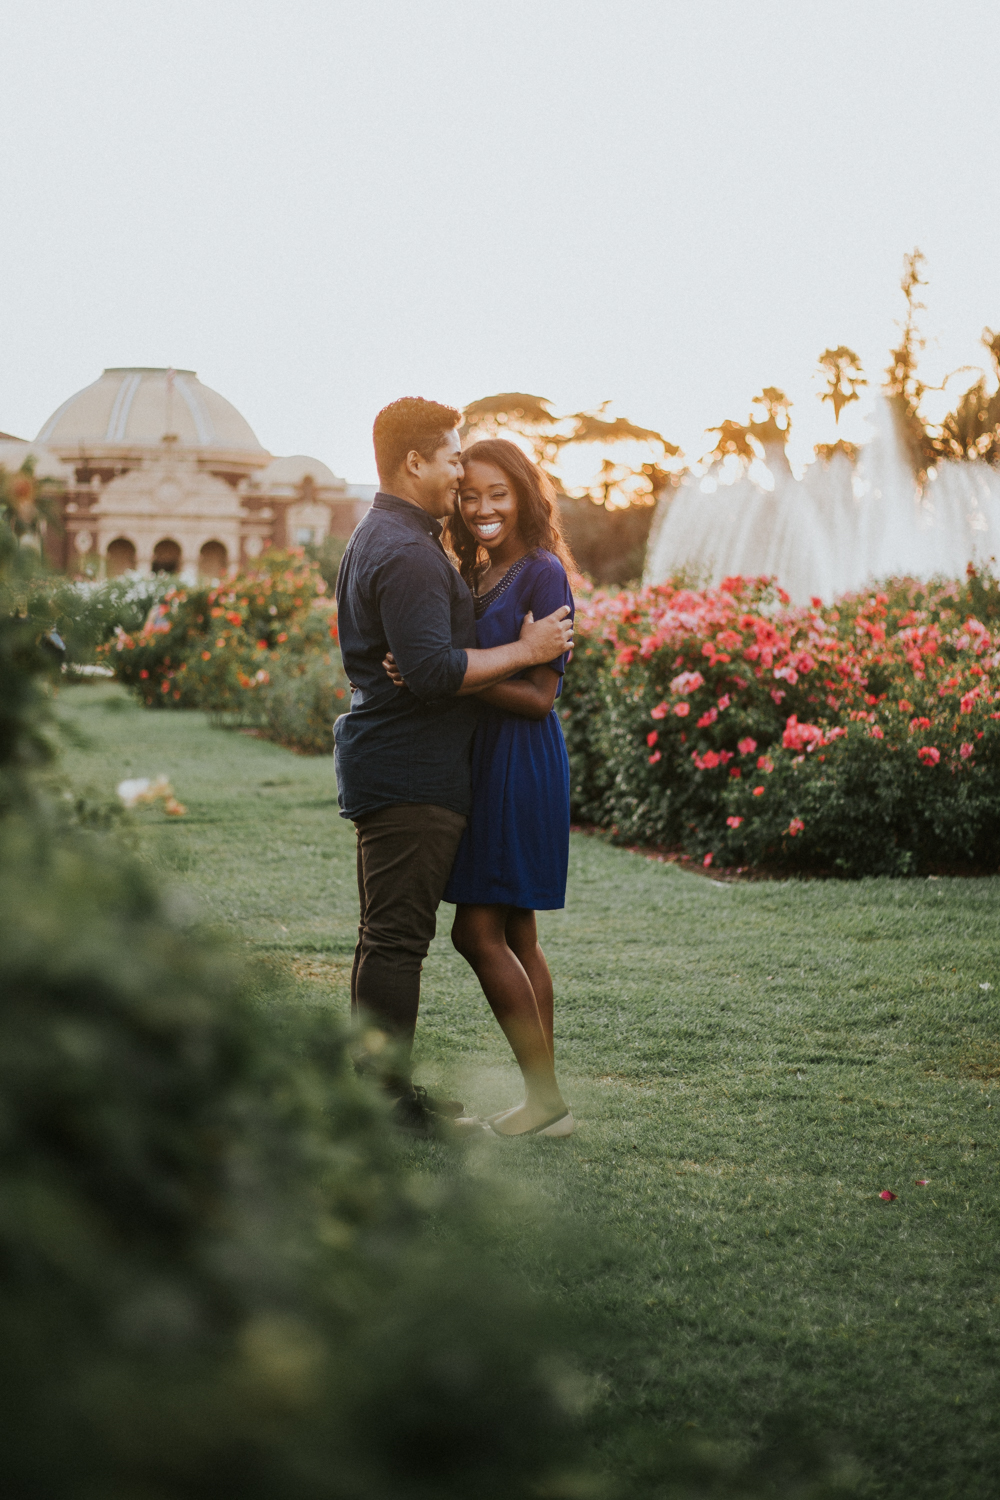 los_angeles_rose_gardens_engagement_session_victoriavelasteguihphotography-7.jpg